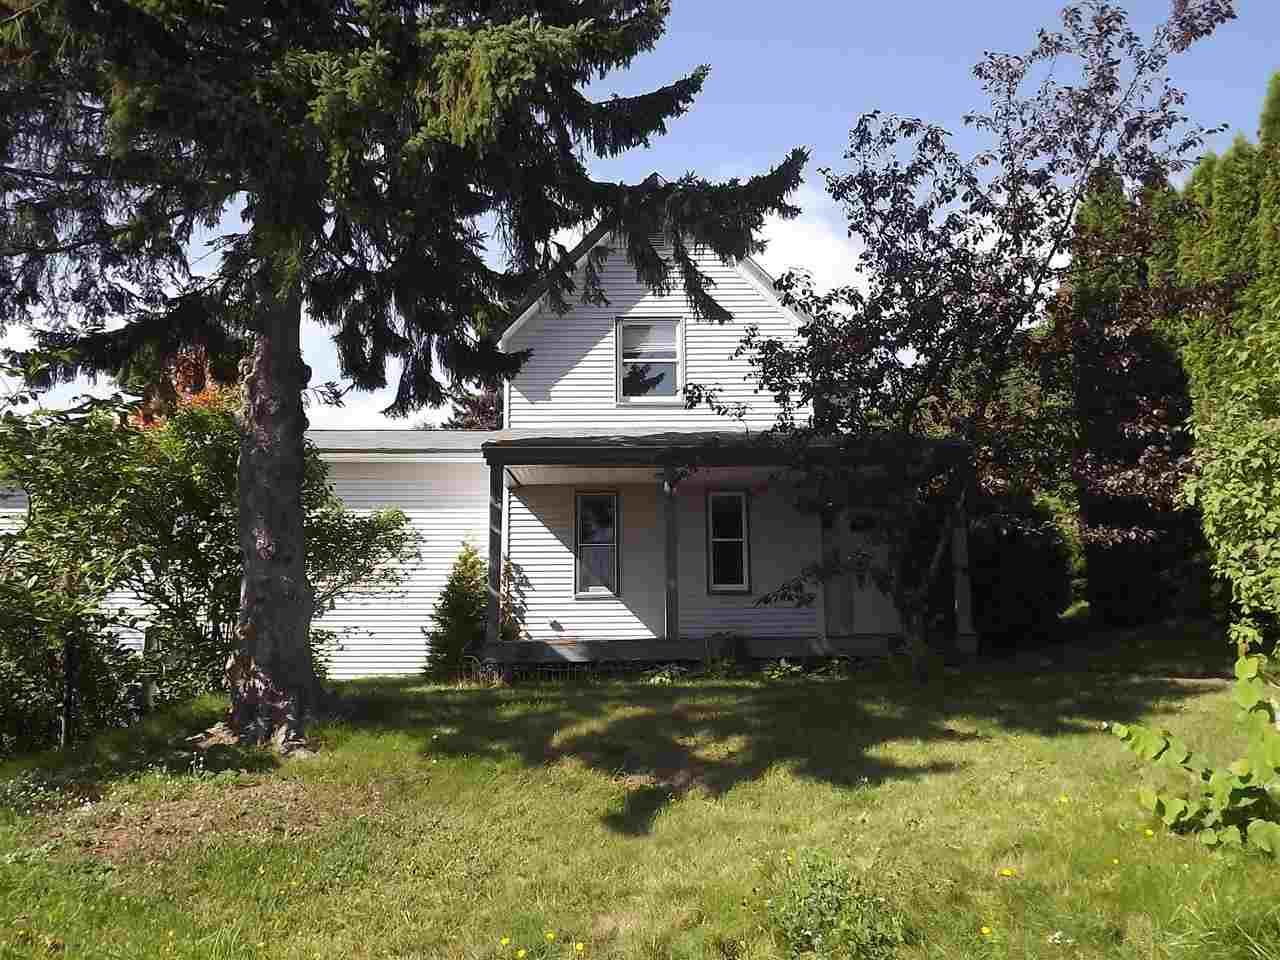 41 N 6th St, Bayfield, WI 54814